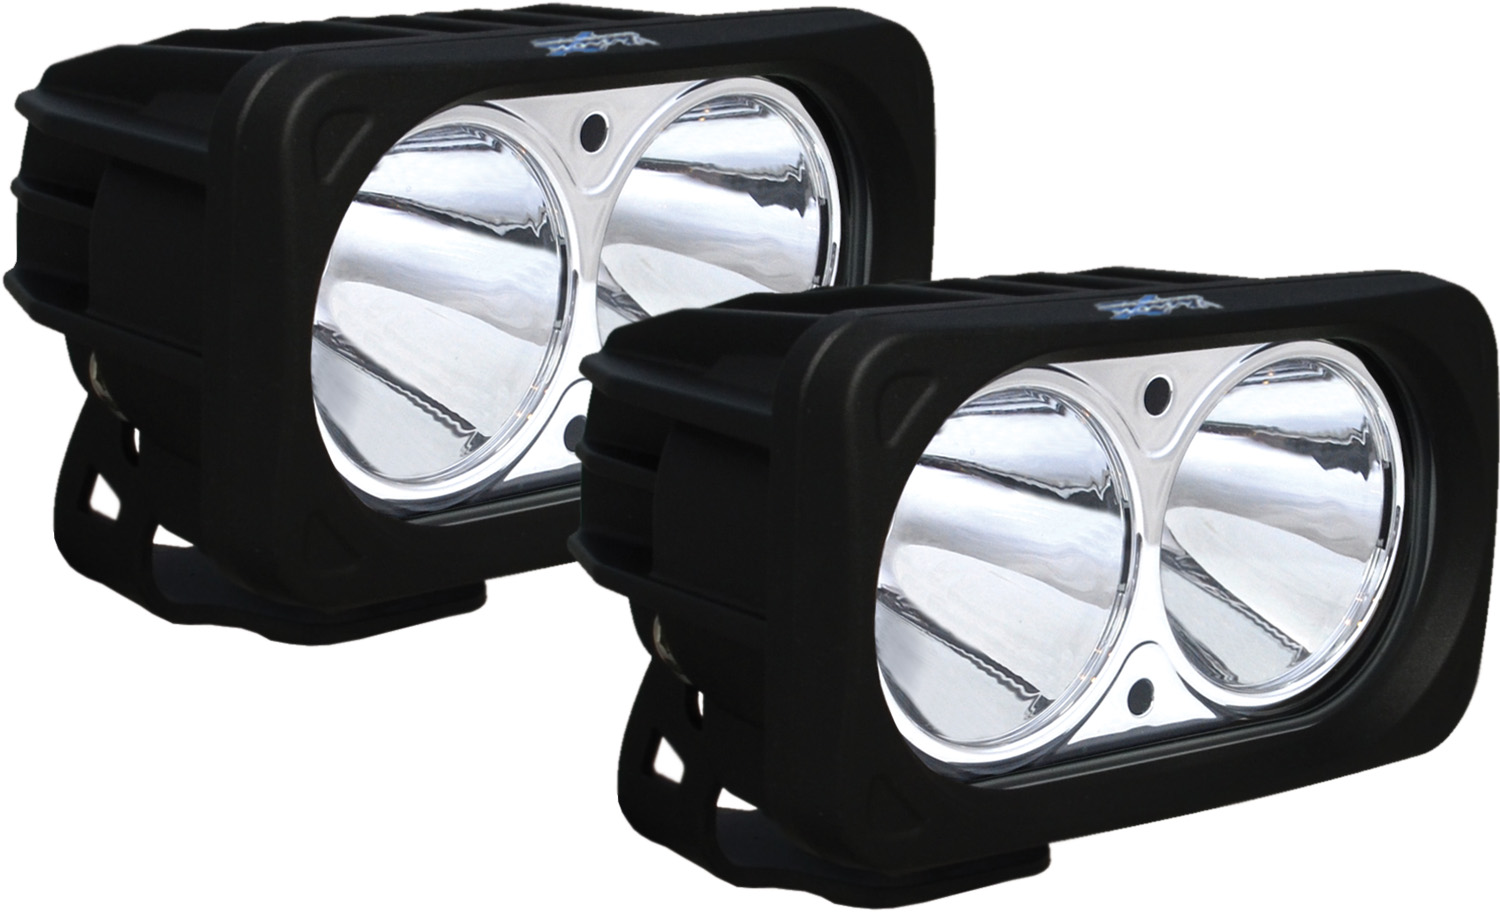 OPTIMUS SQUARE BLACK 2 10W LEDS 10° NARROW KIT OF 2 LIGHTS